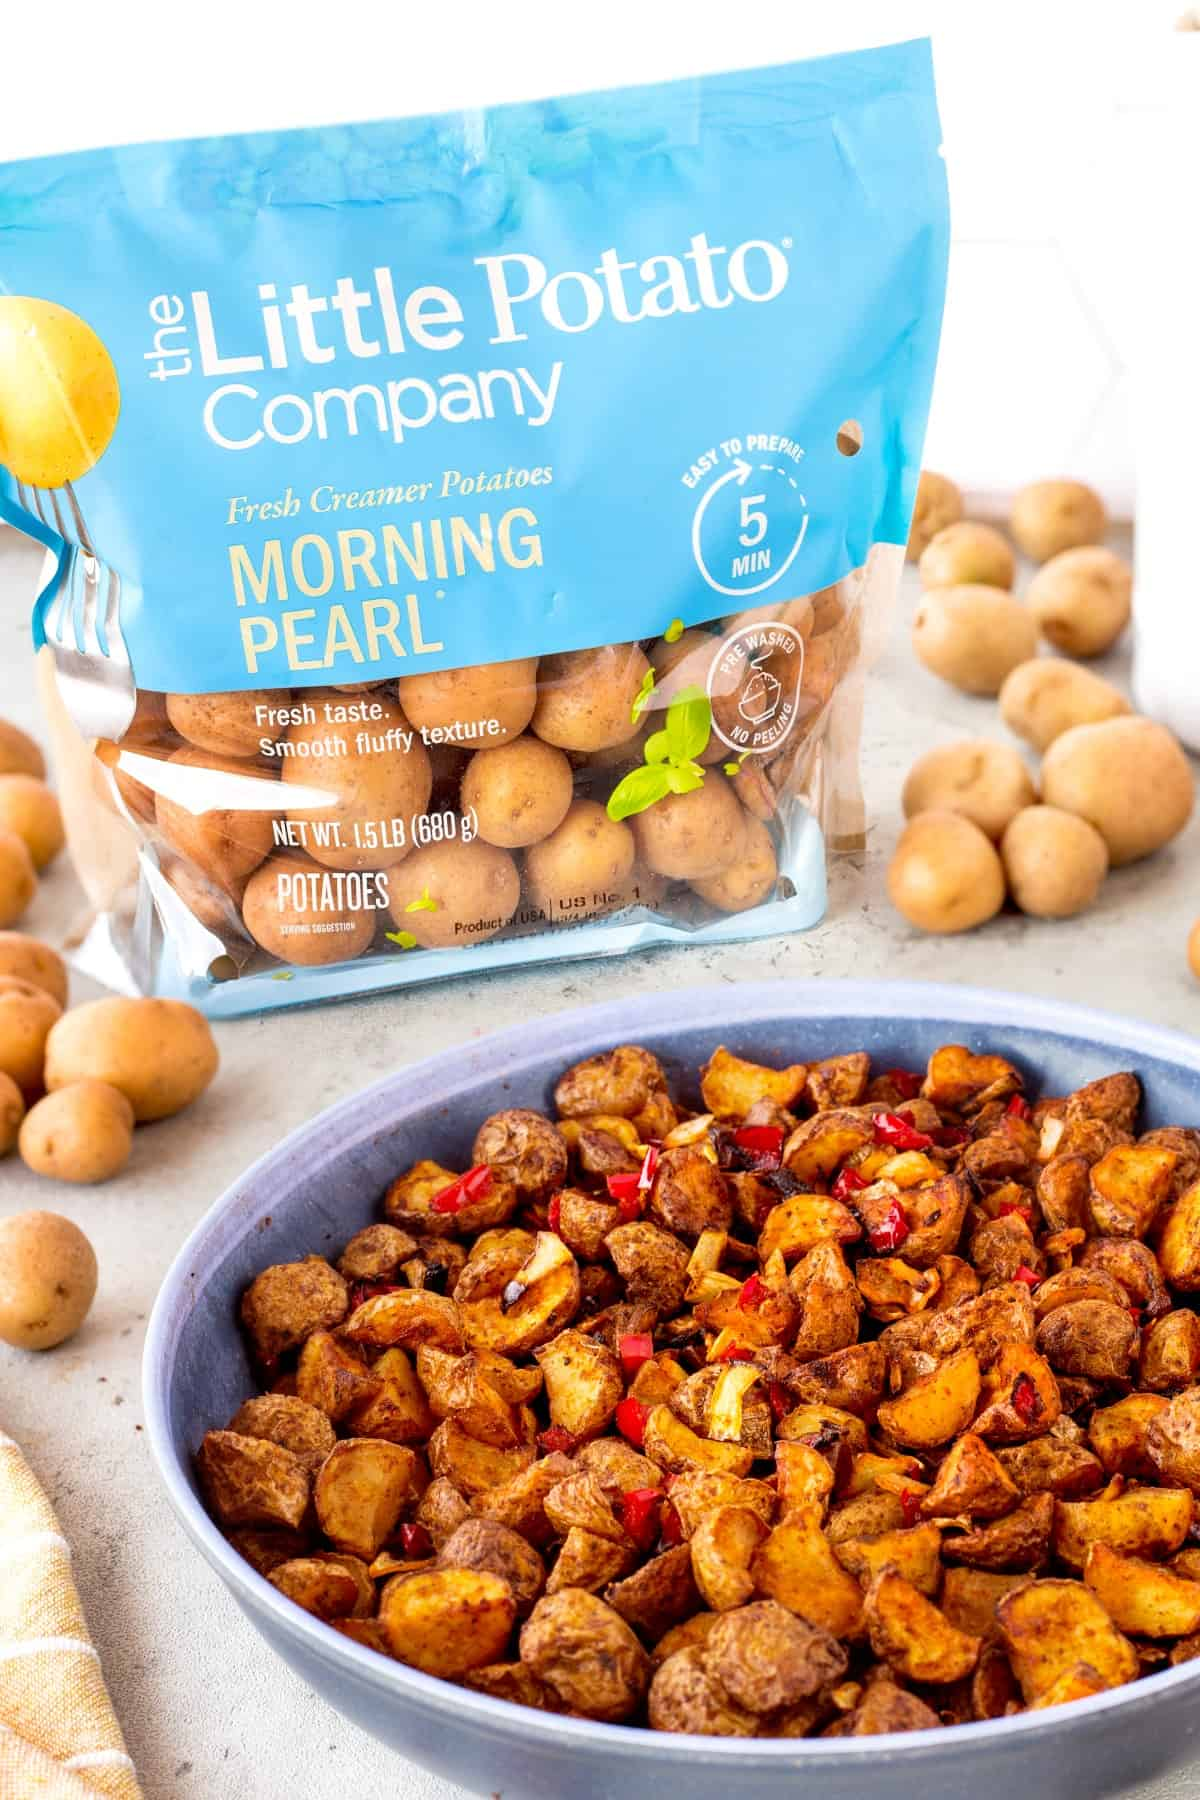 Air Fryer Home Fries in a bowl with Little Potato Company packaging.